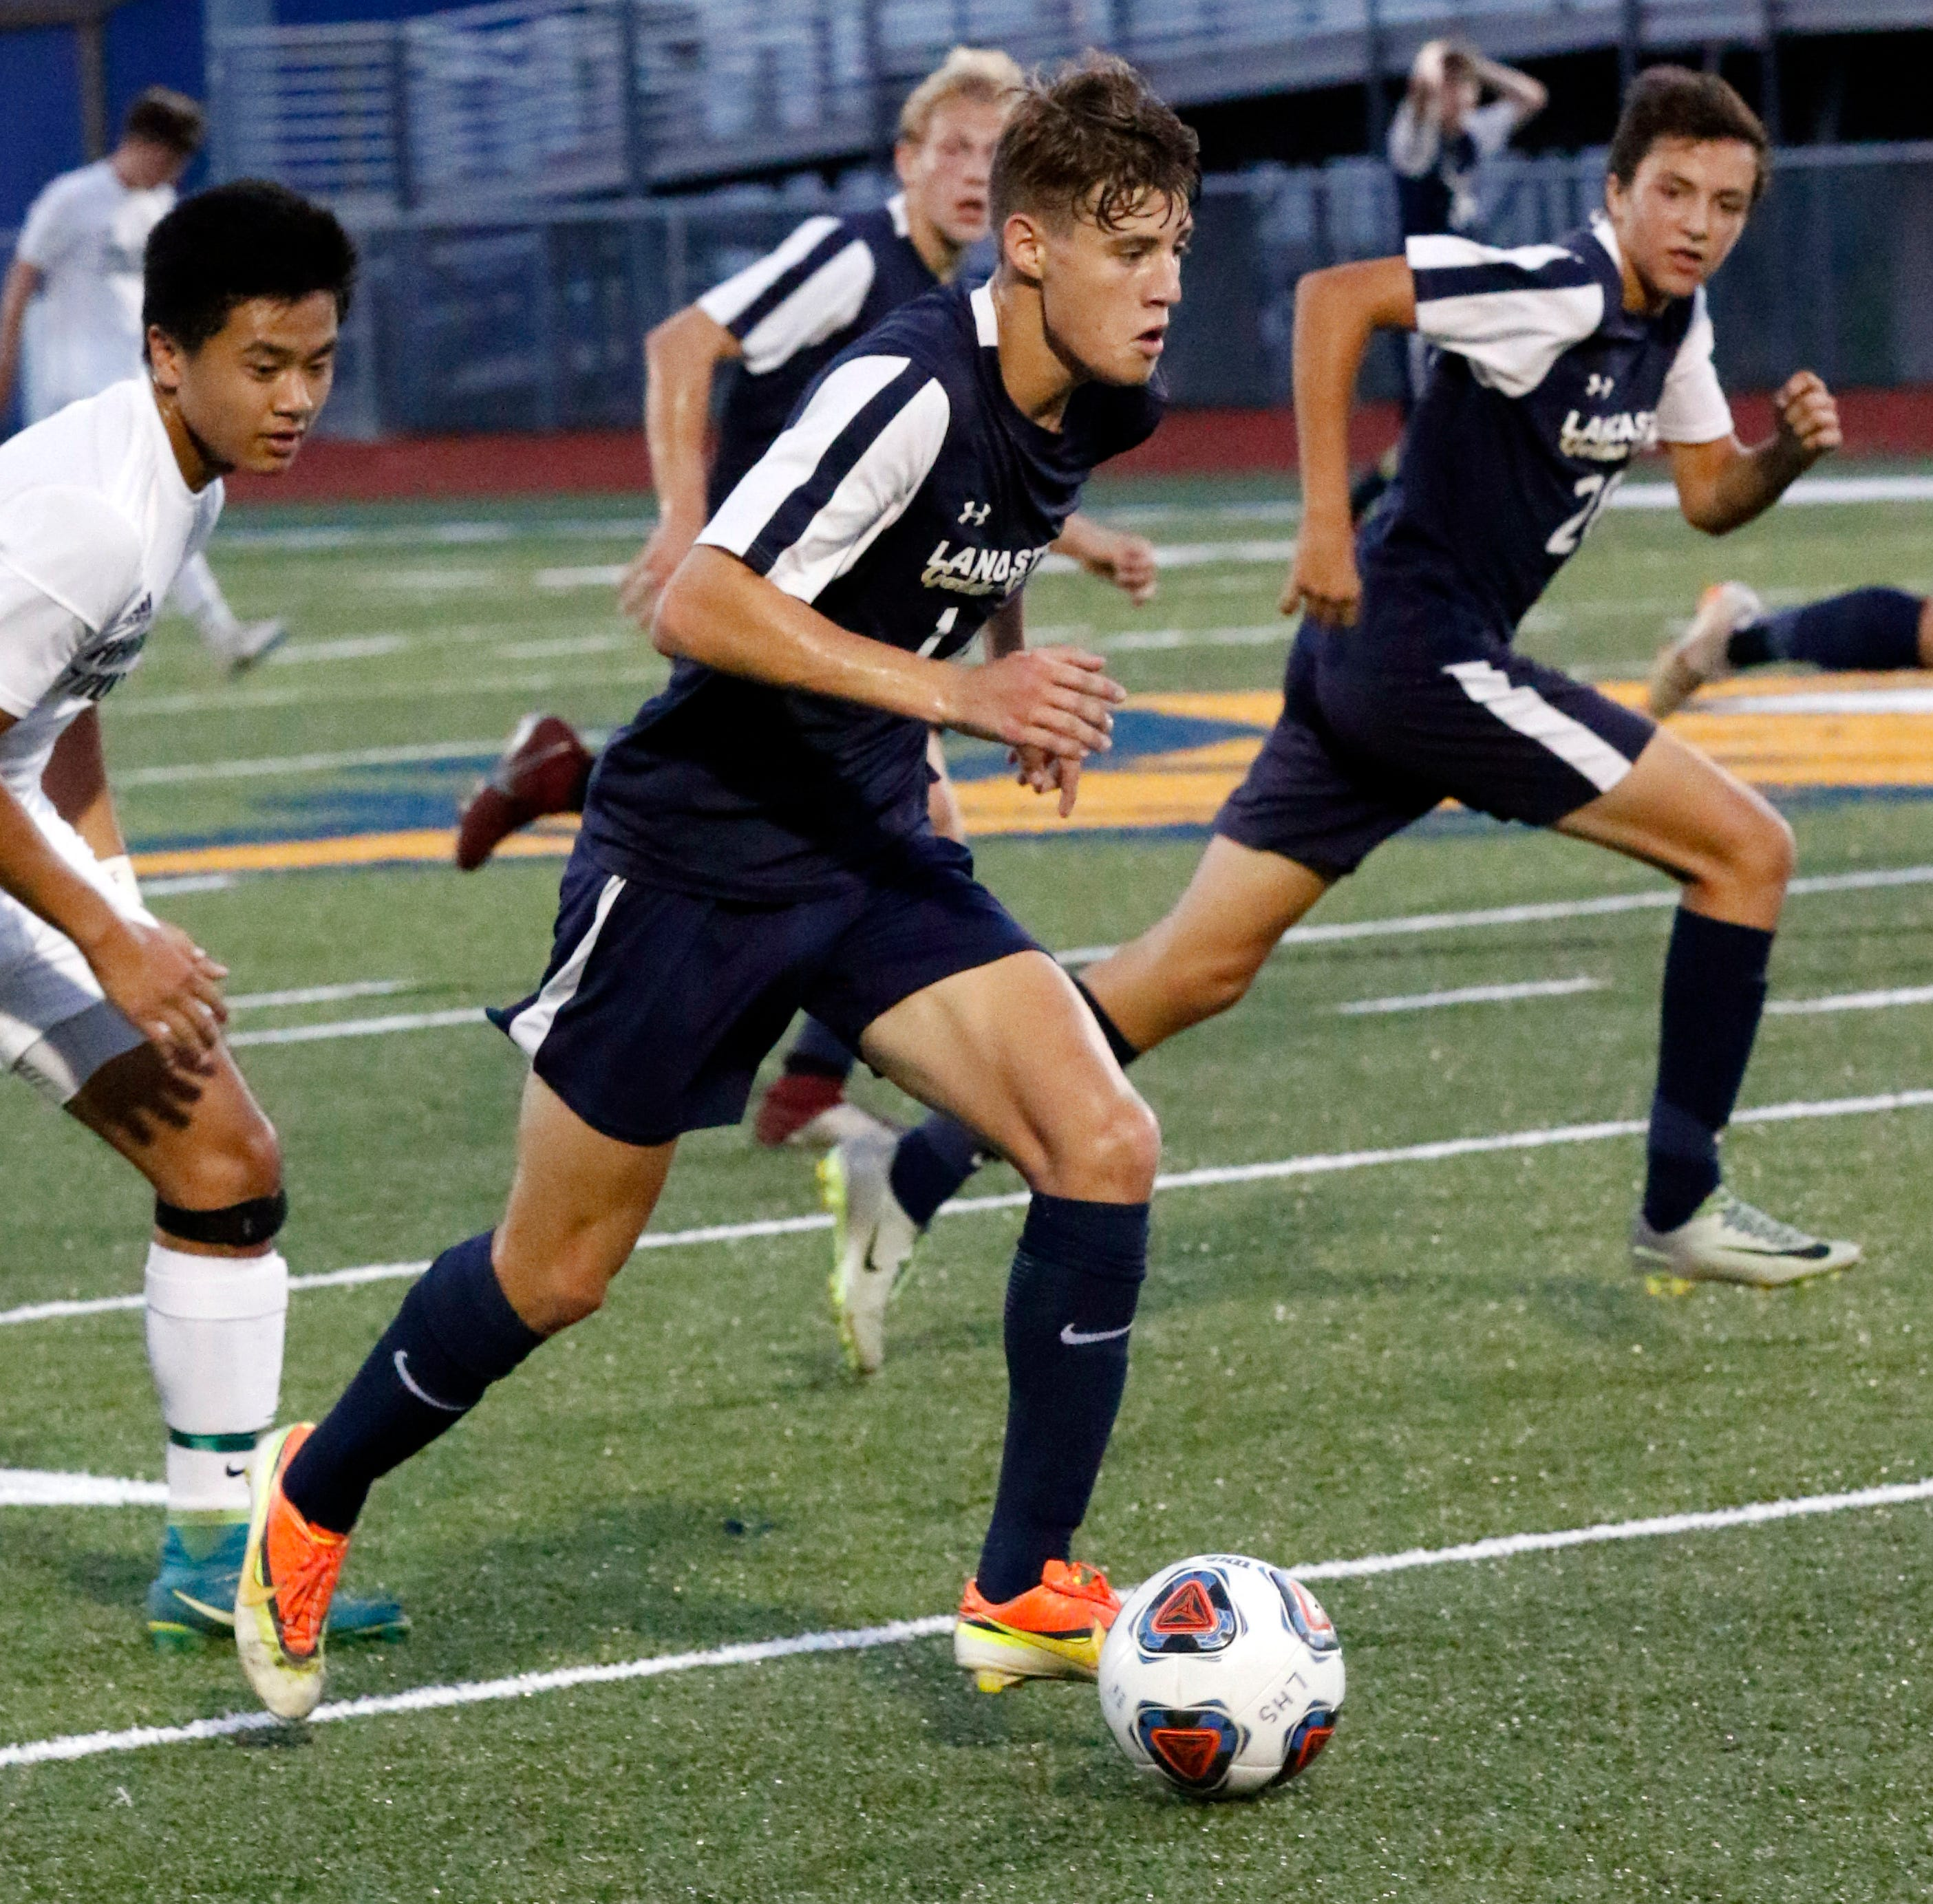 Lancaster boys soccer off to one its best starts in recent memory